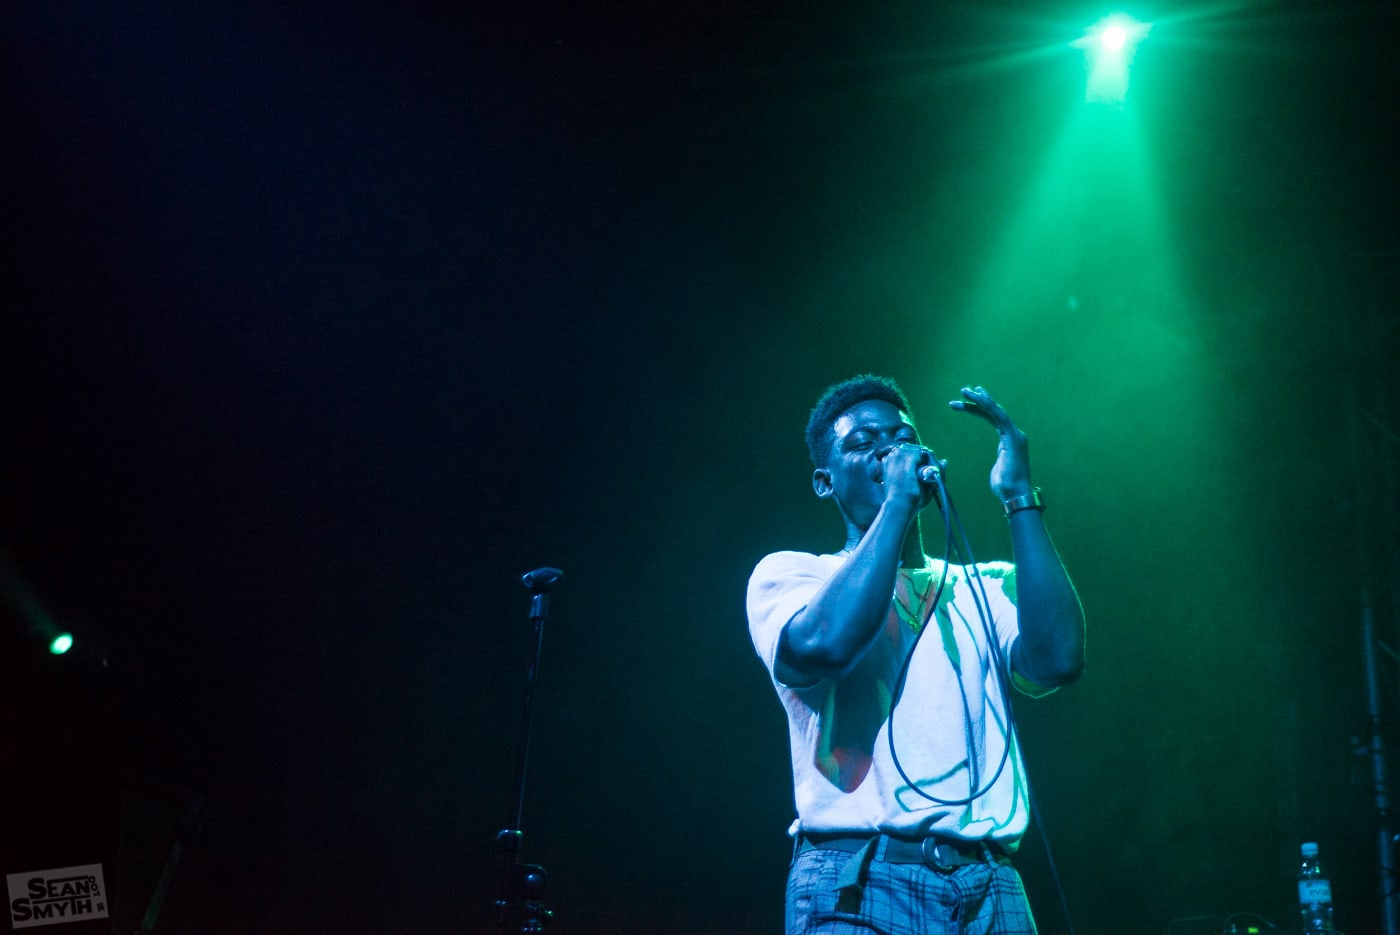 jafaris-at-the-button-factory-by-sean-smyth-28-9-16-2-of-8